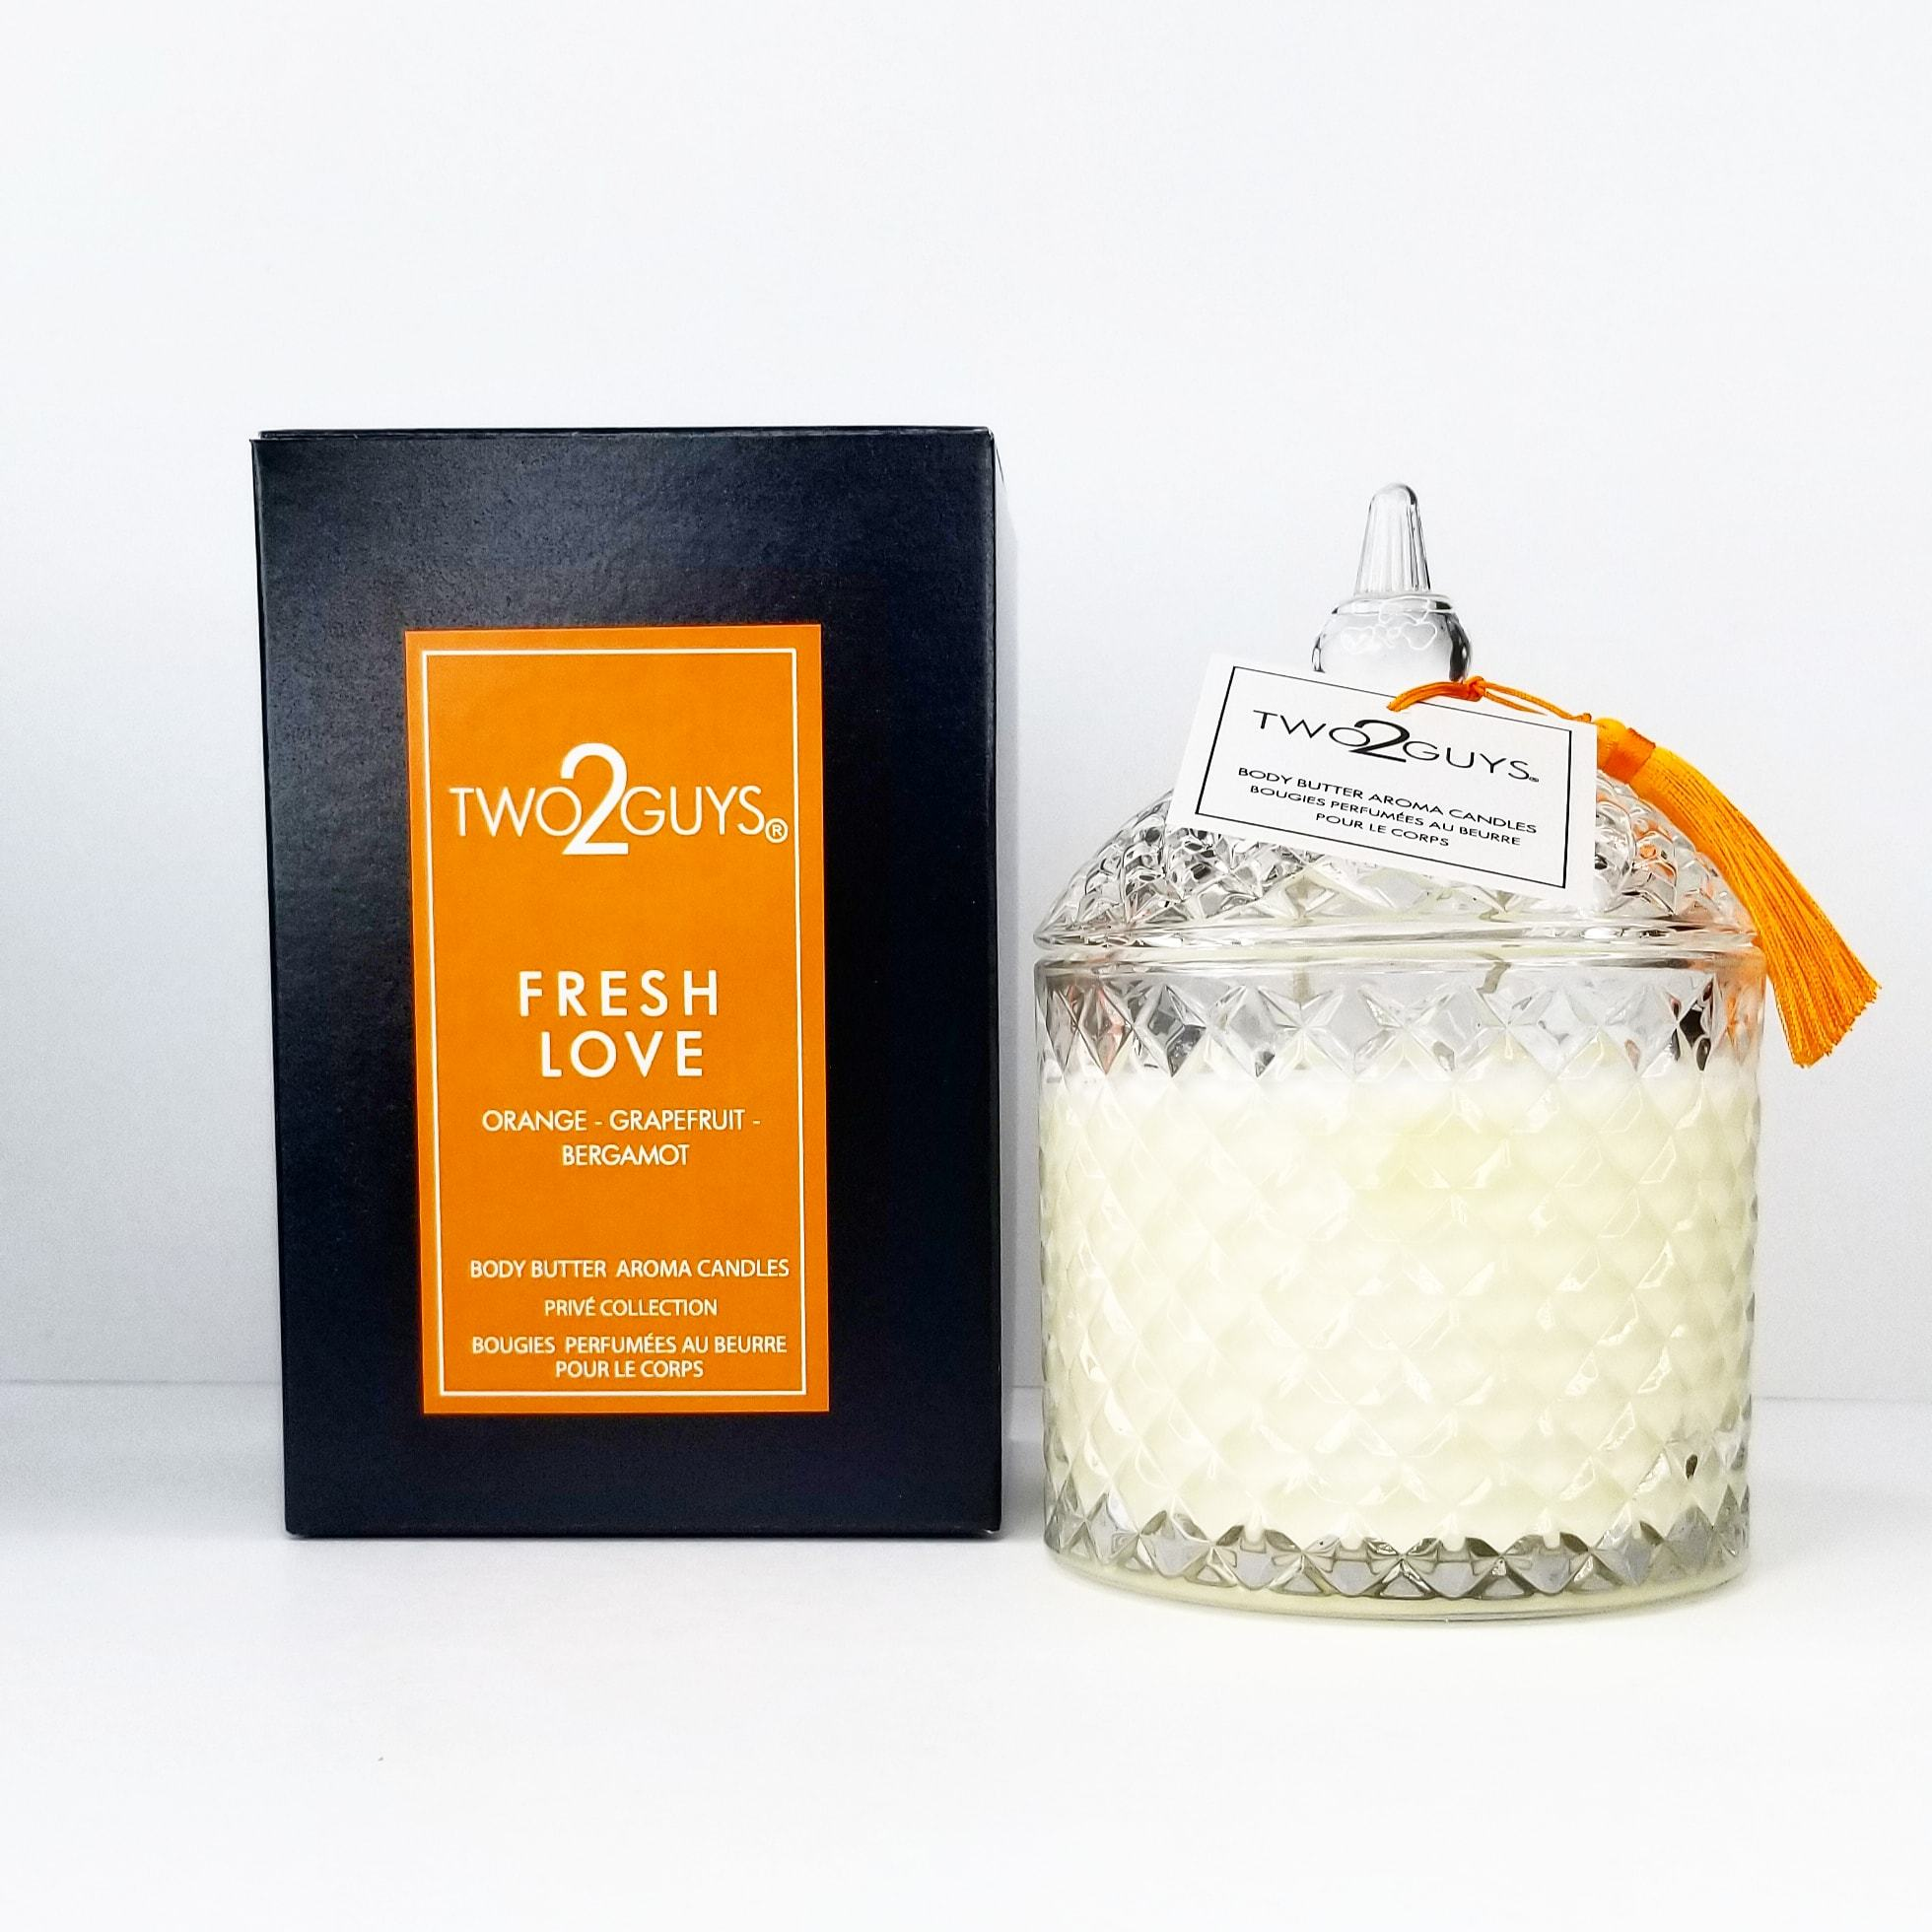 FRESH LOVE Vegan Candle